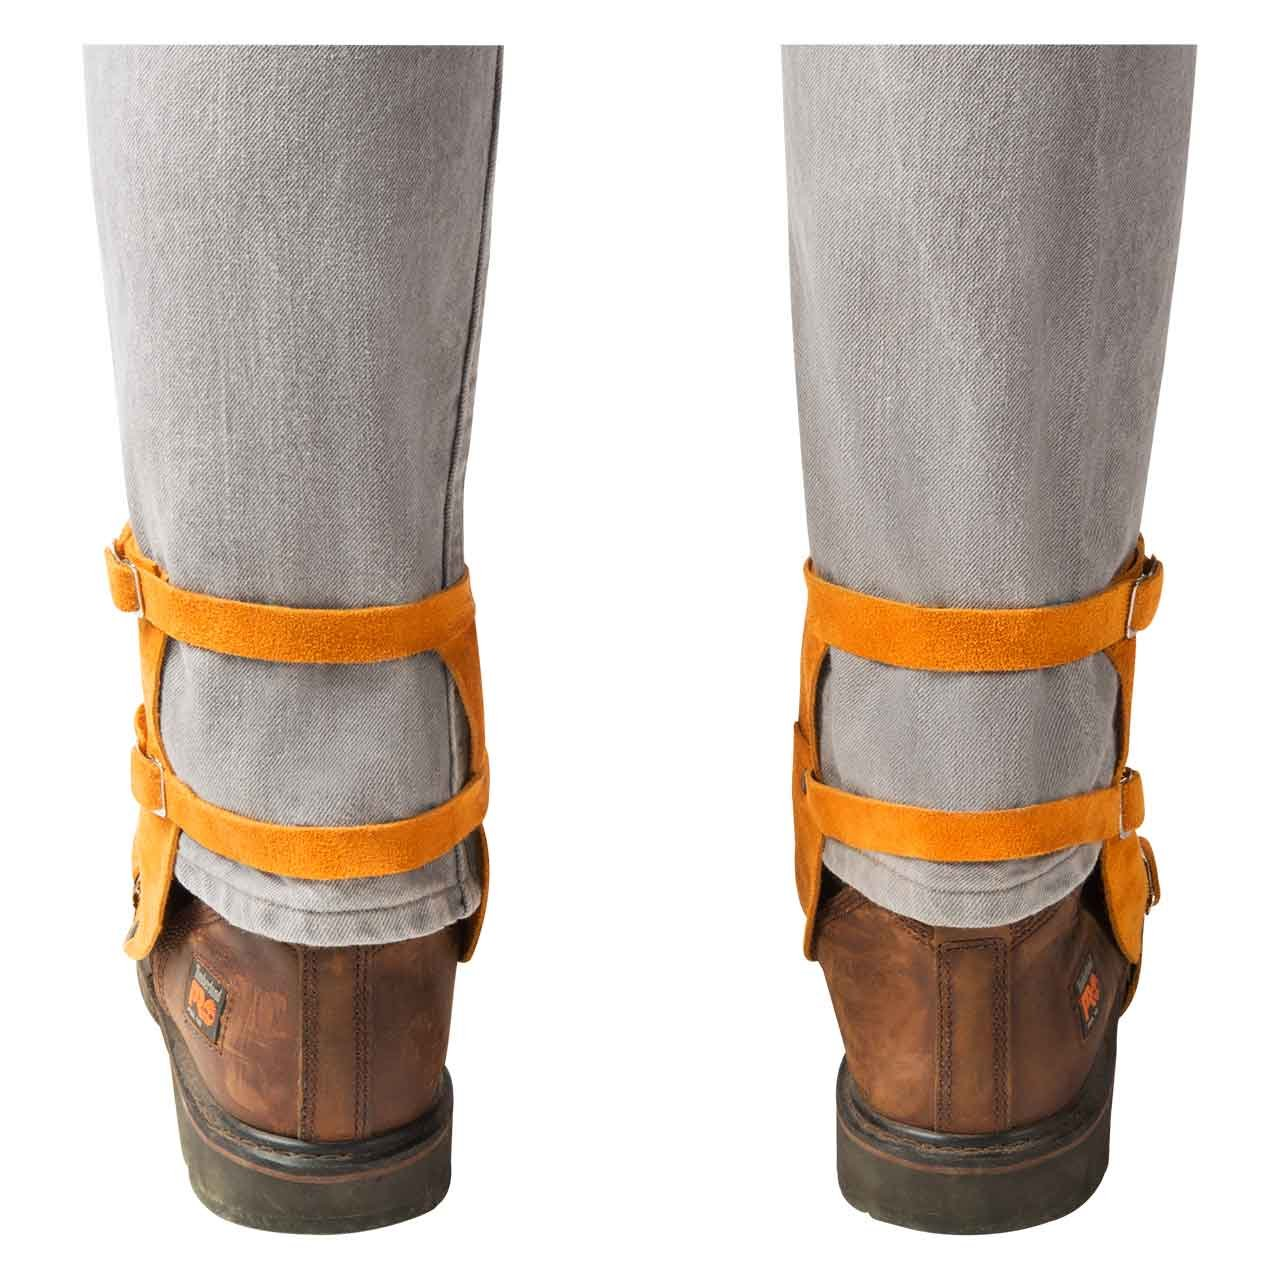 Steiner 12184 Leather Side Split Cowhide Shoe Spats, One Size by Steiner (Image #2)